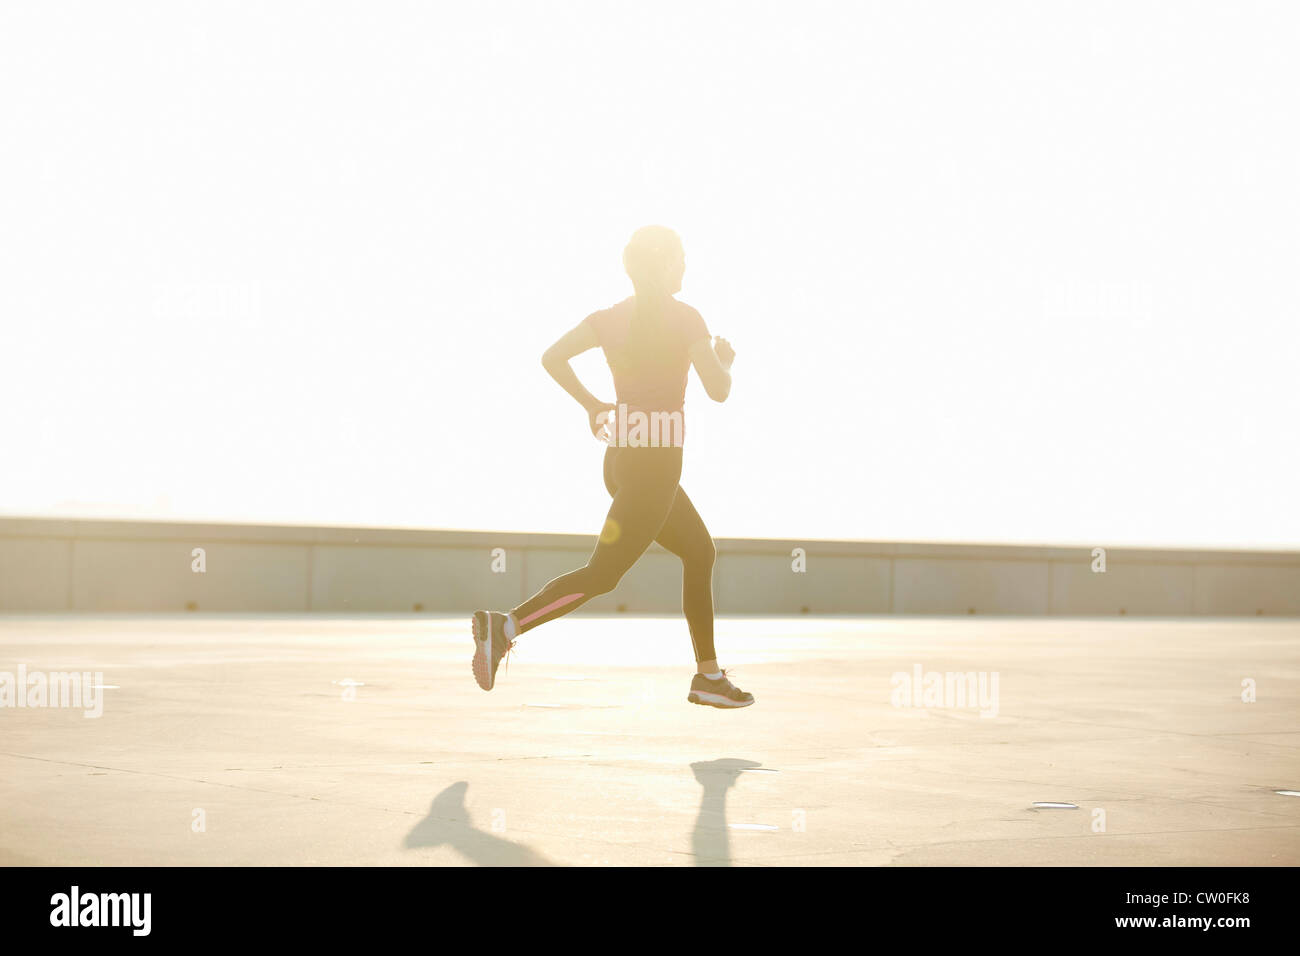 Man running on rooftop - Stock Image